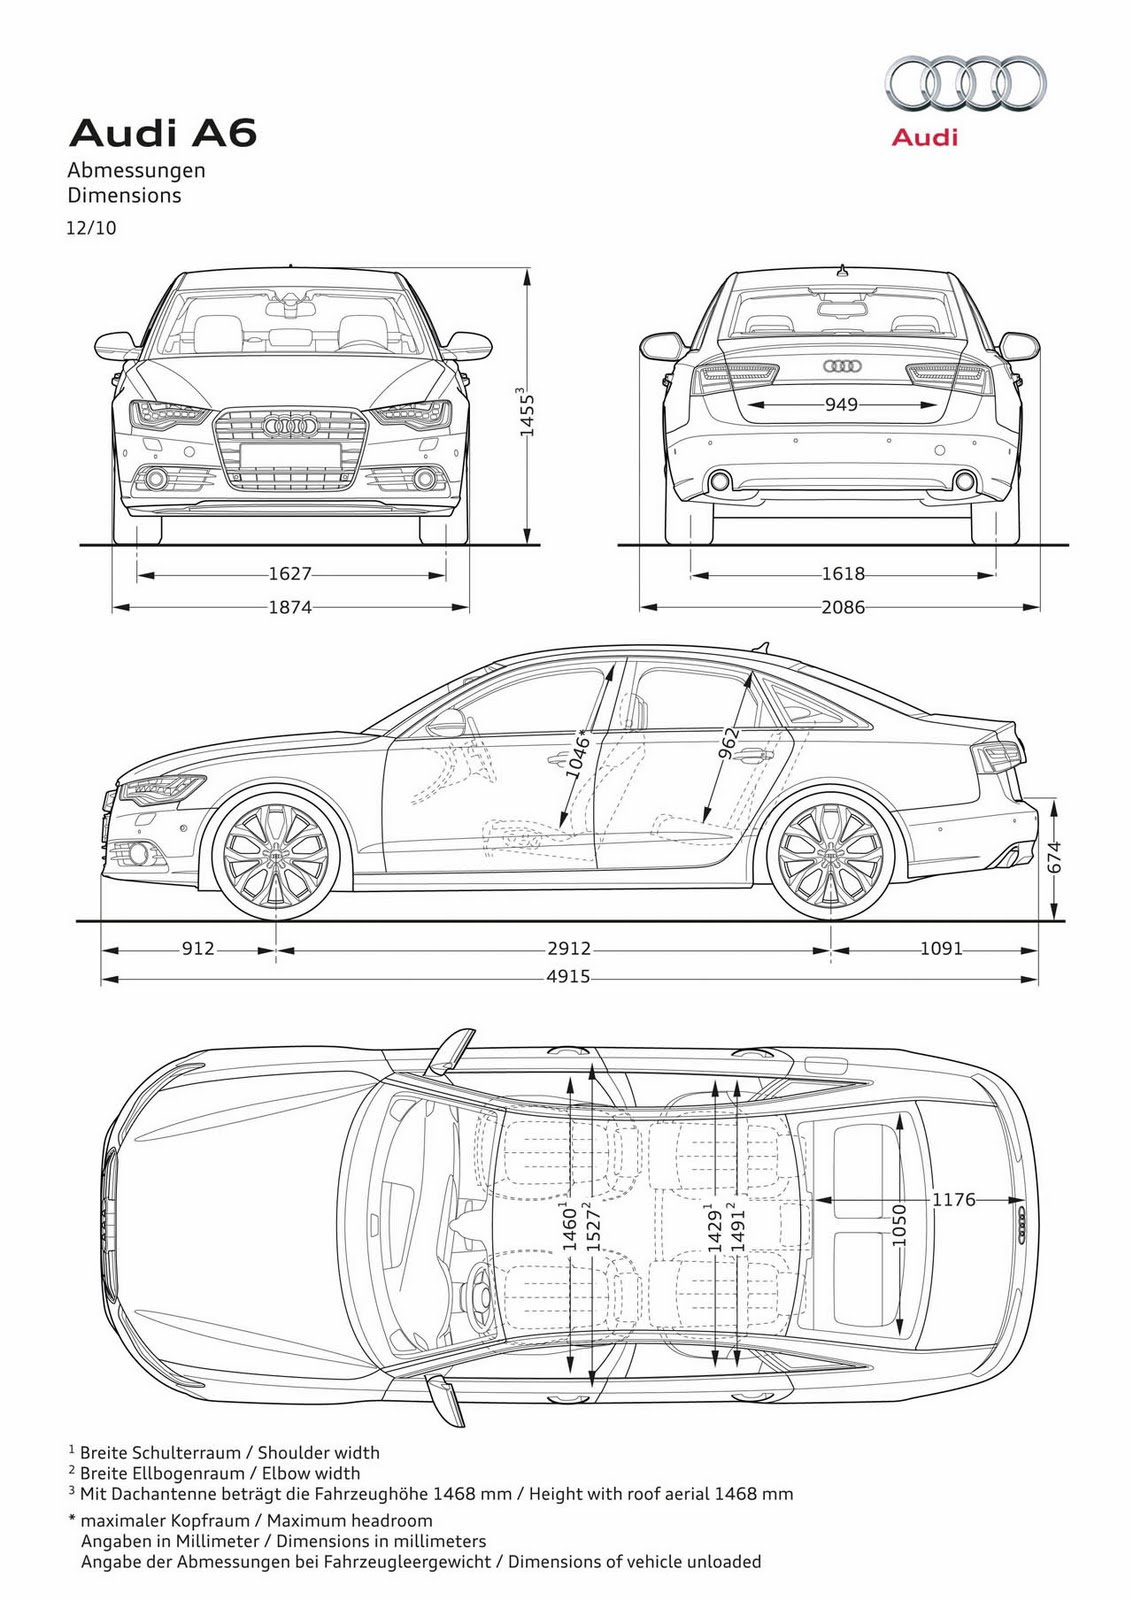 small resolution of 2012 audi a6 car dimension